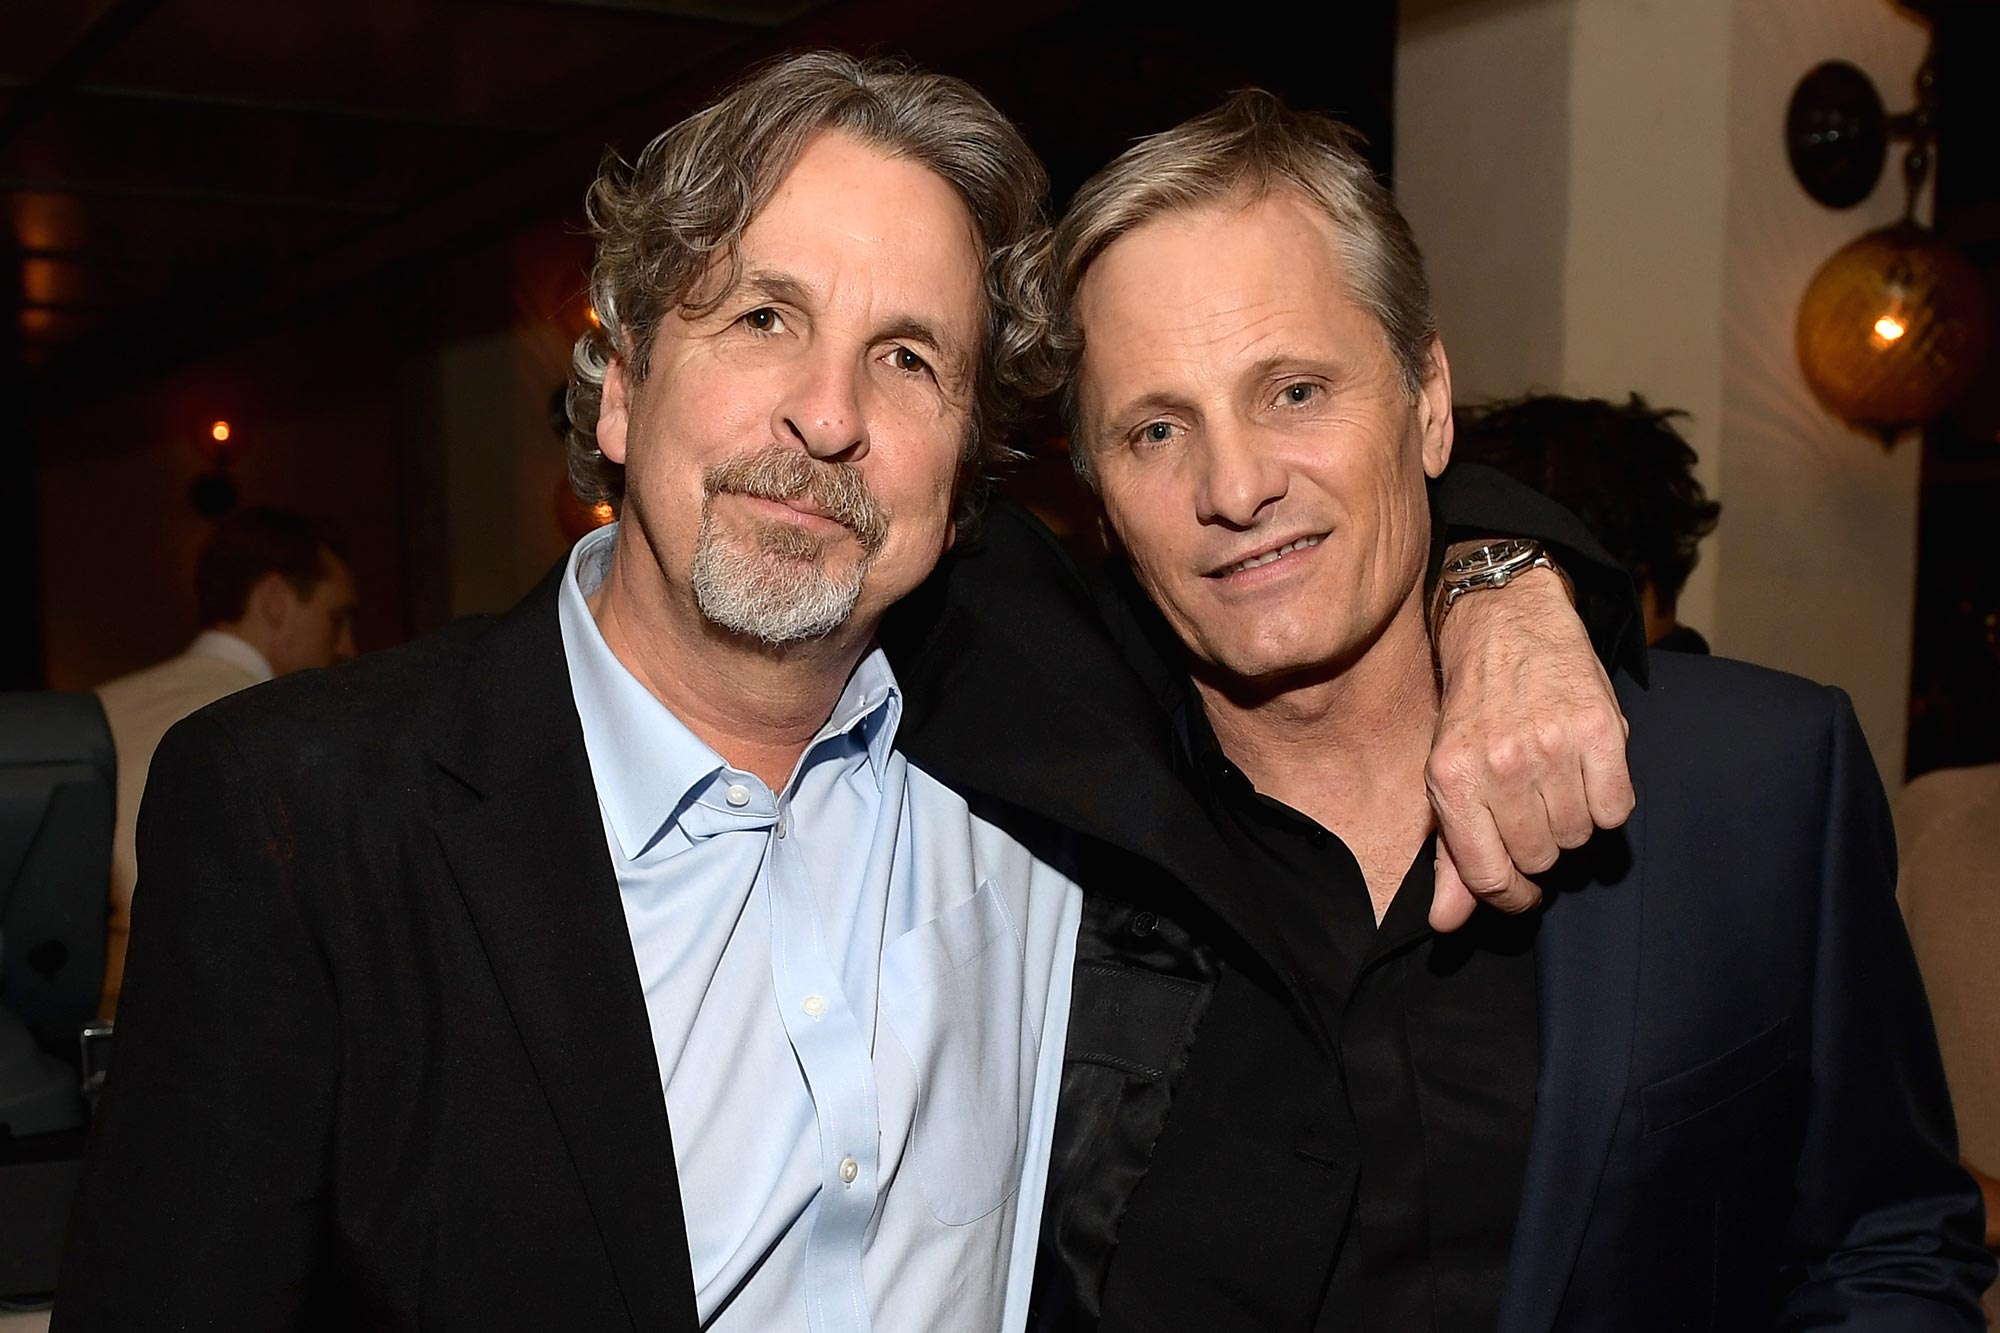 Peter Farrelly and Viggo Mortensen